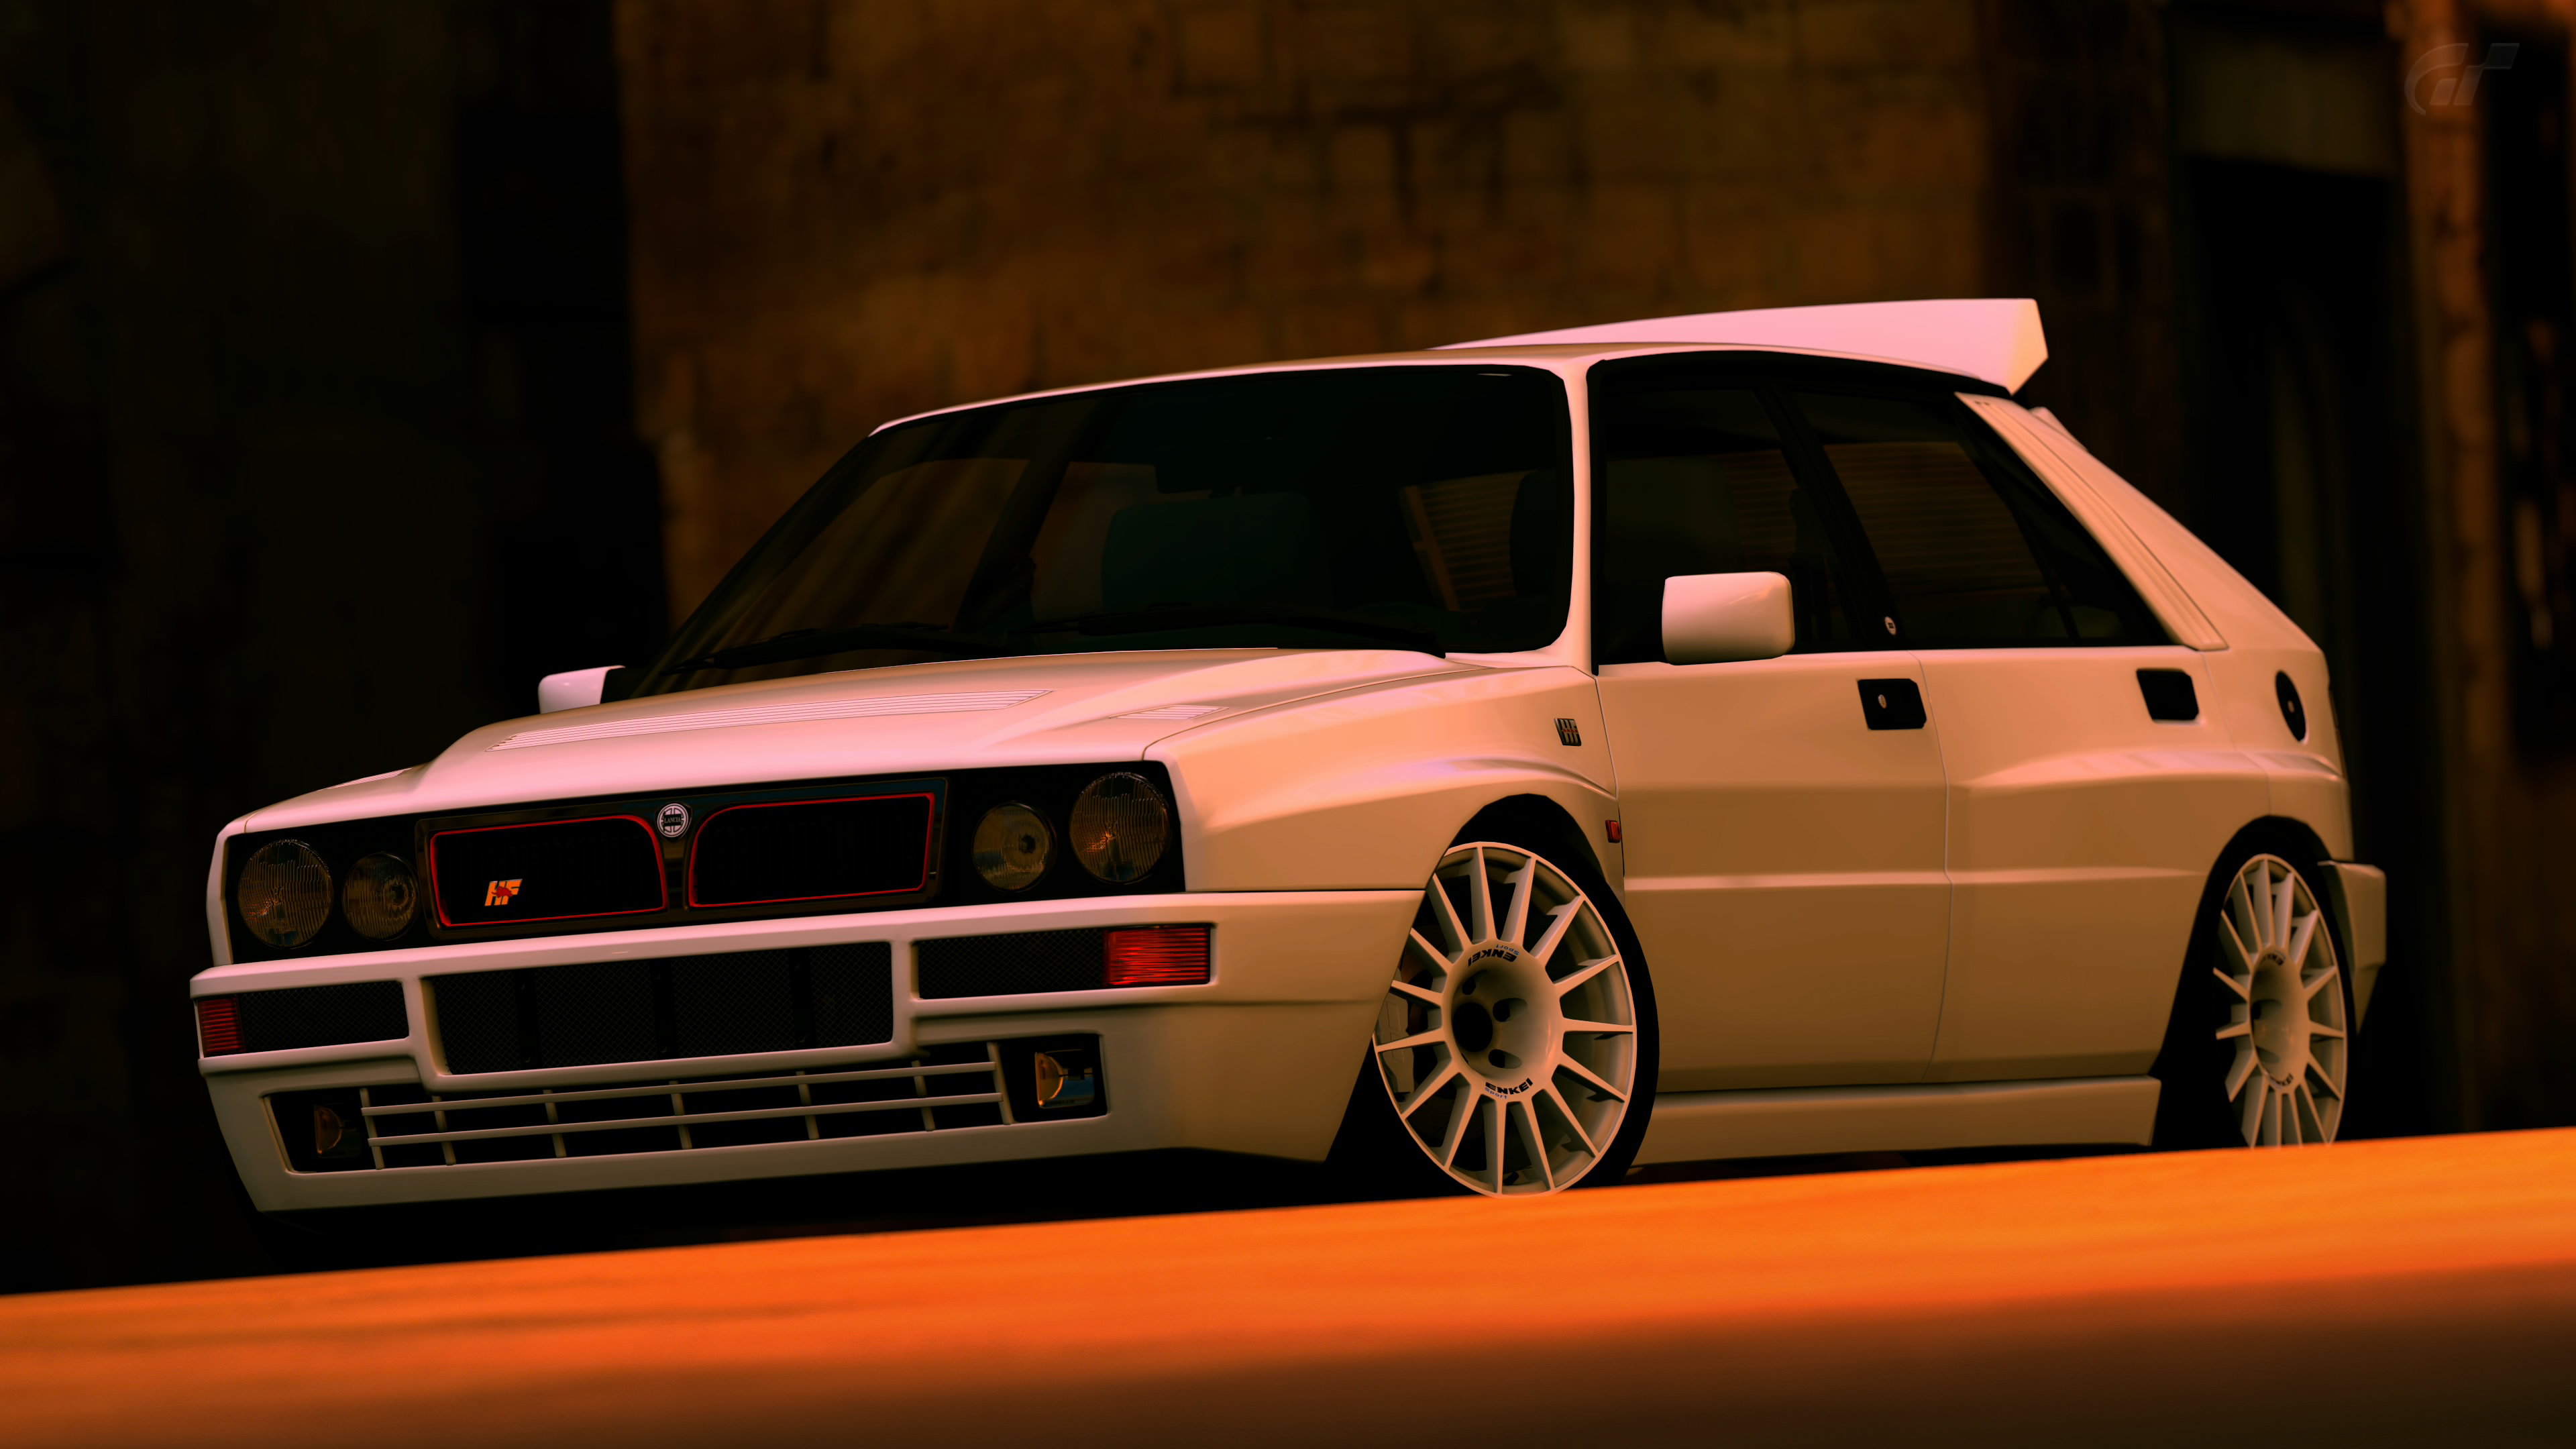 lancia delta hf integrale evoluzione gt6 by vertualissimo on deviantart. Black Bedroom Furniture Sets. Home Design Ideas